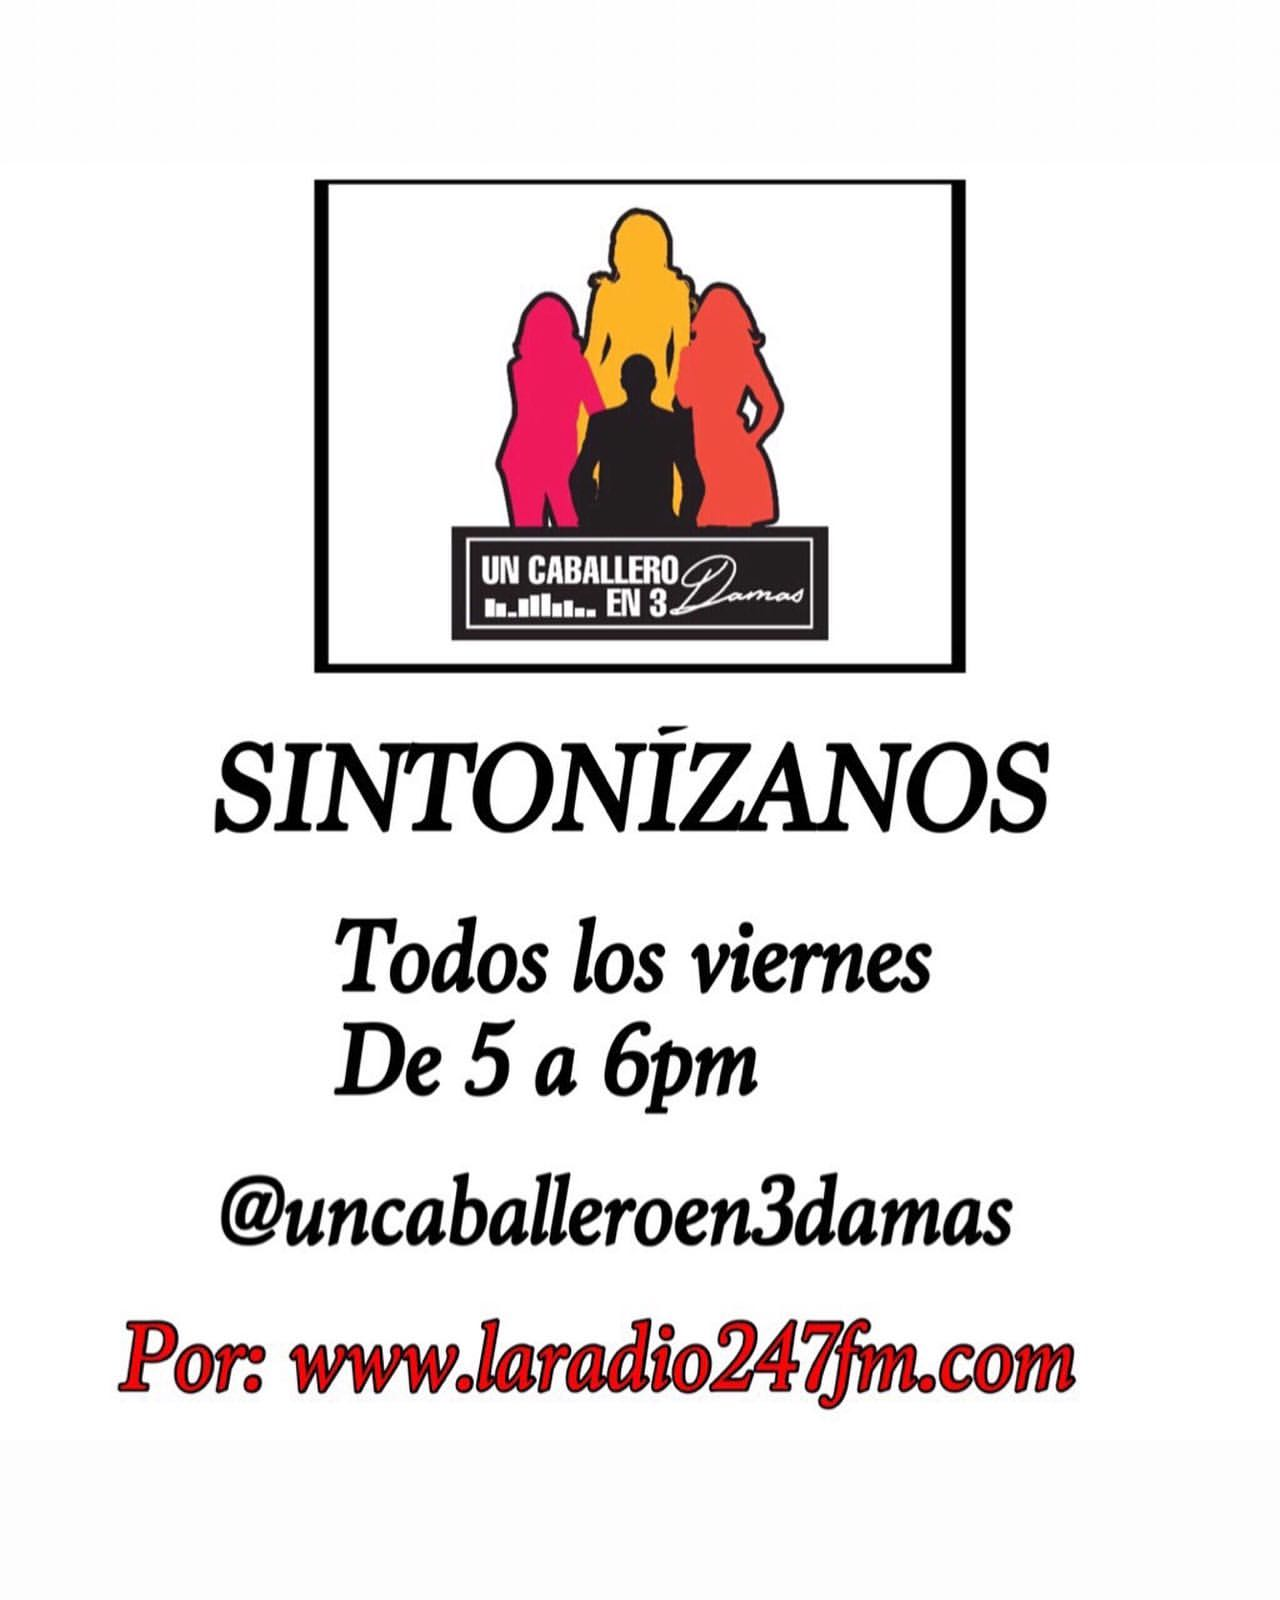 UN CABALLERO EN3 DAMAS BLOQUE 5 6 DIC #LARADIO247FM https://youtu.be/xBtj8wnfh68